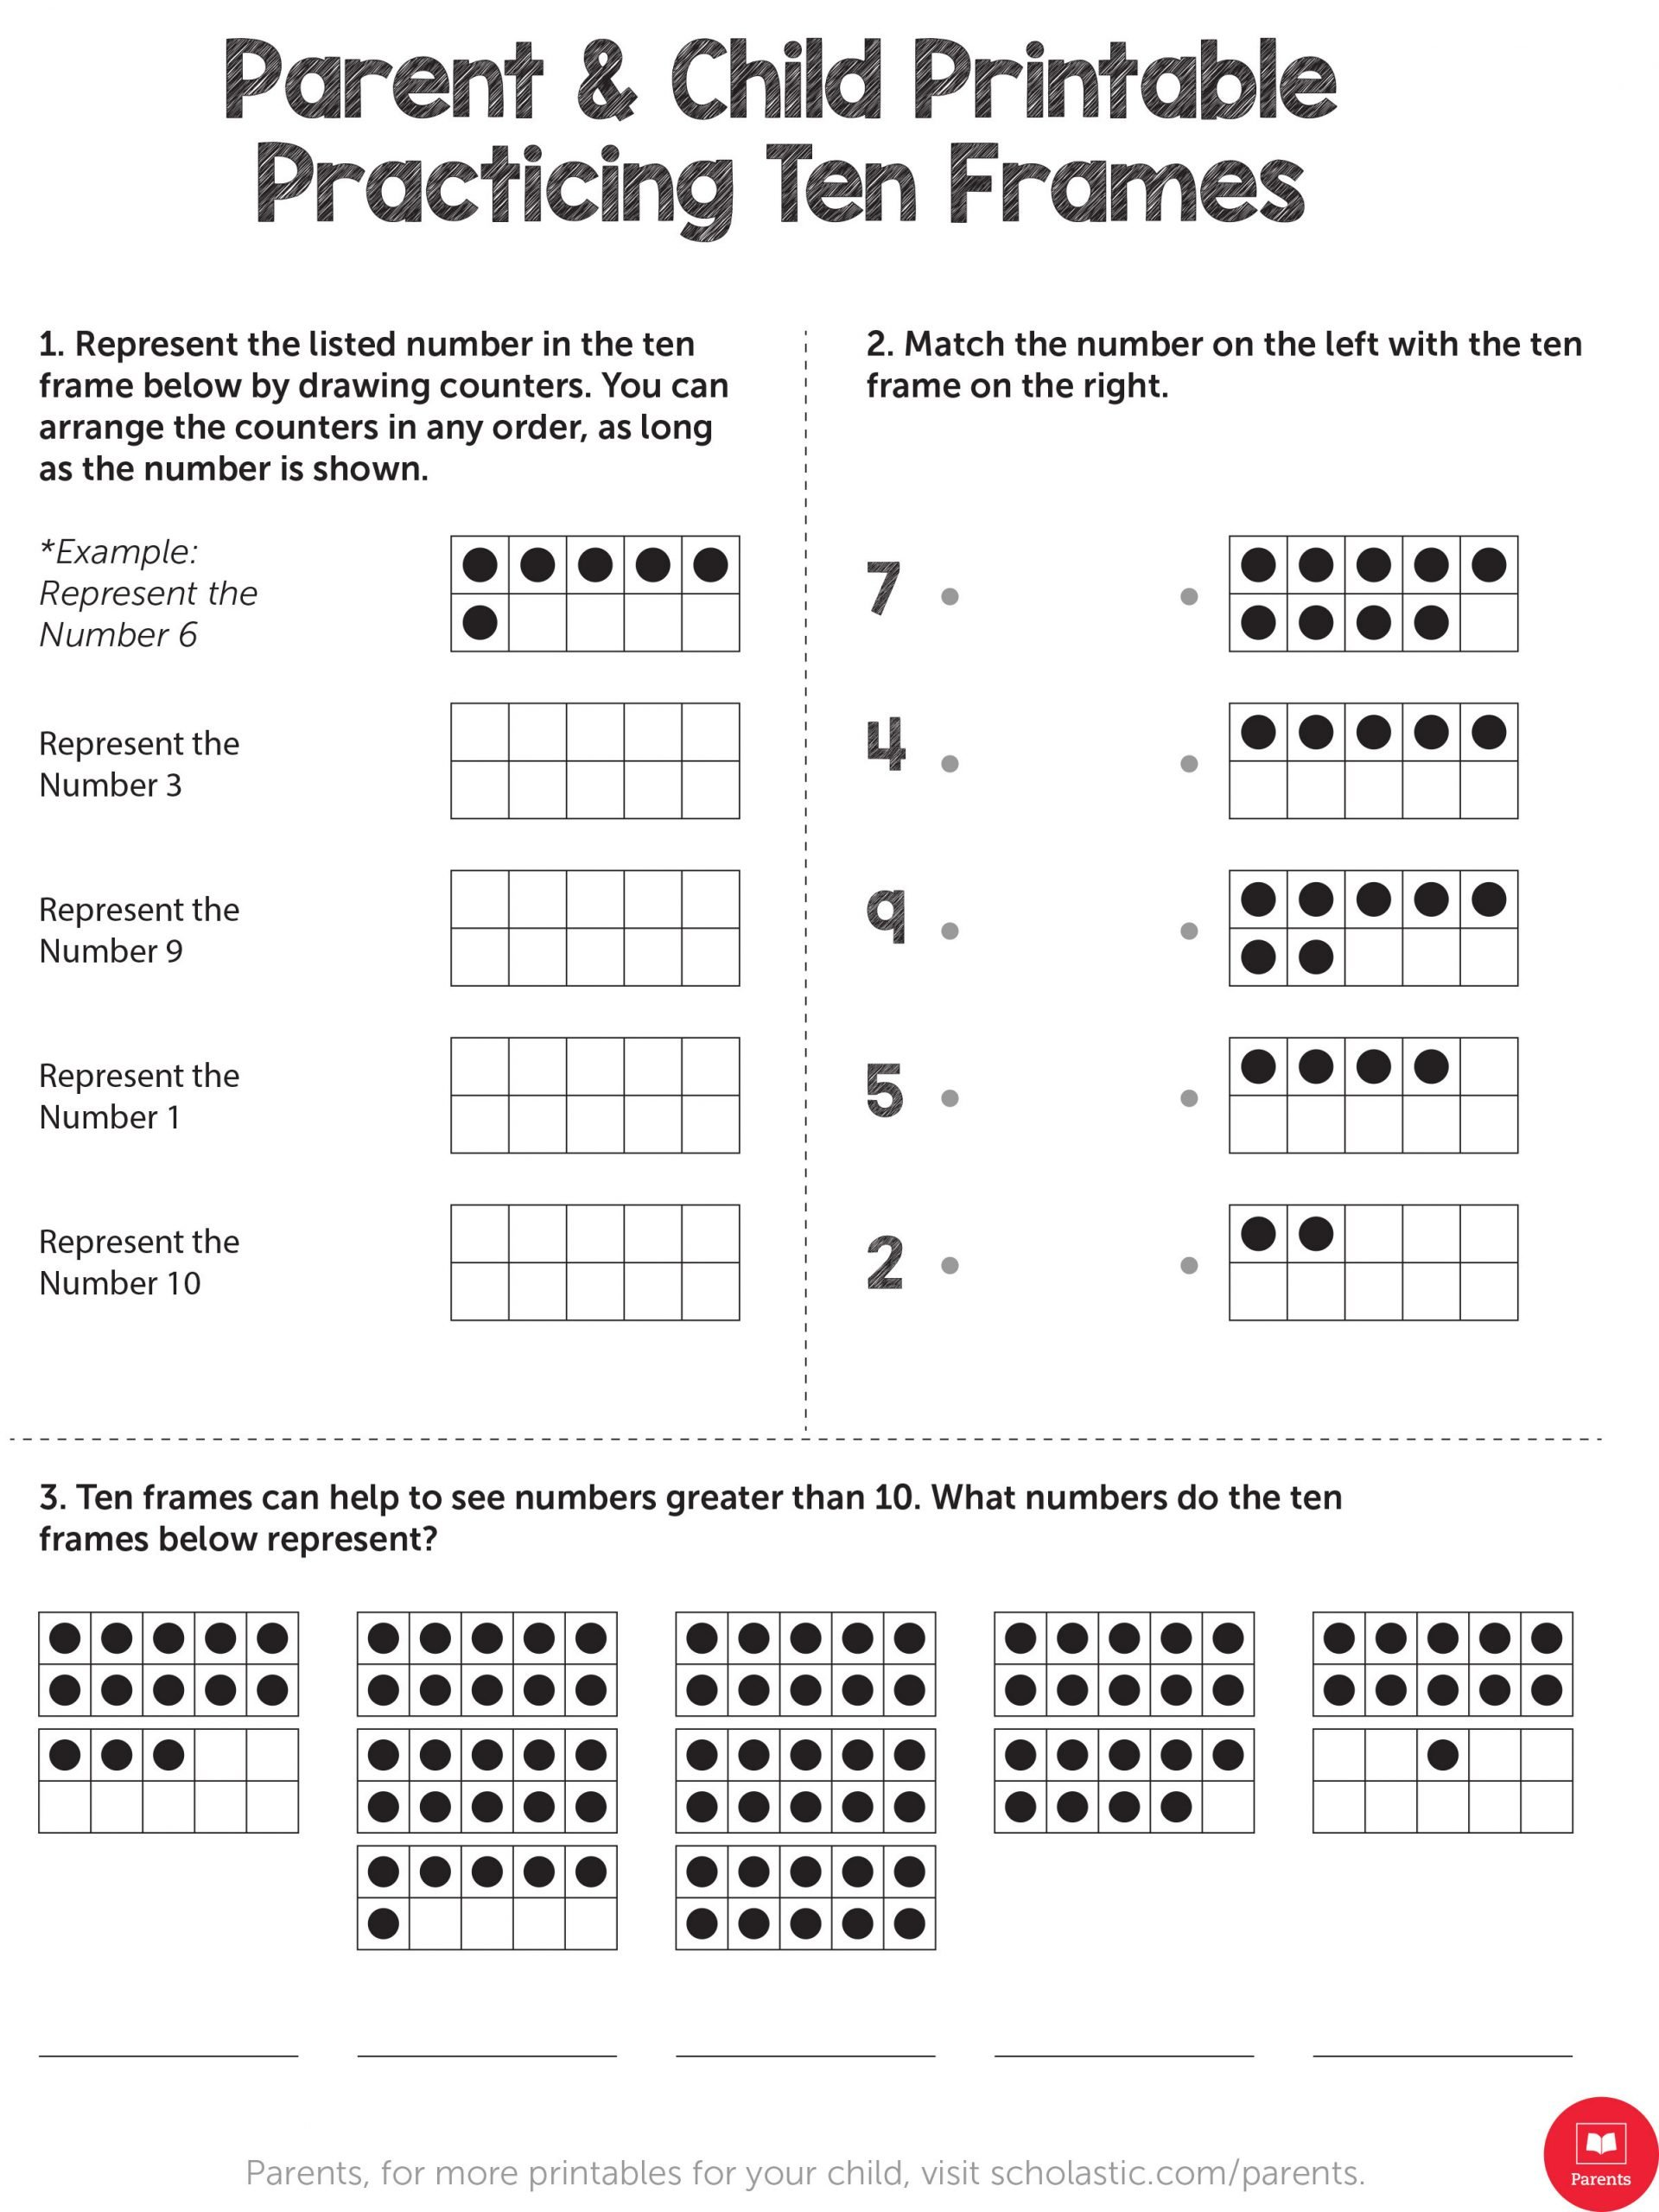 Scholastic Math Worksheets Practicing Ten Frames Worksheets & Printables